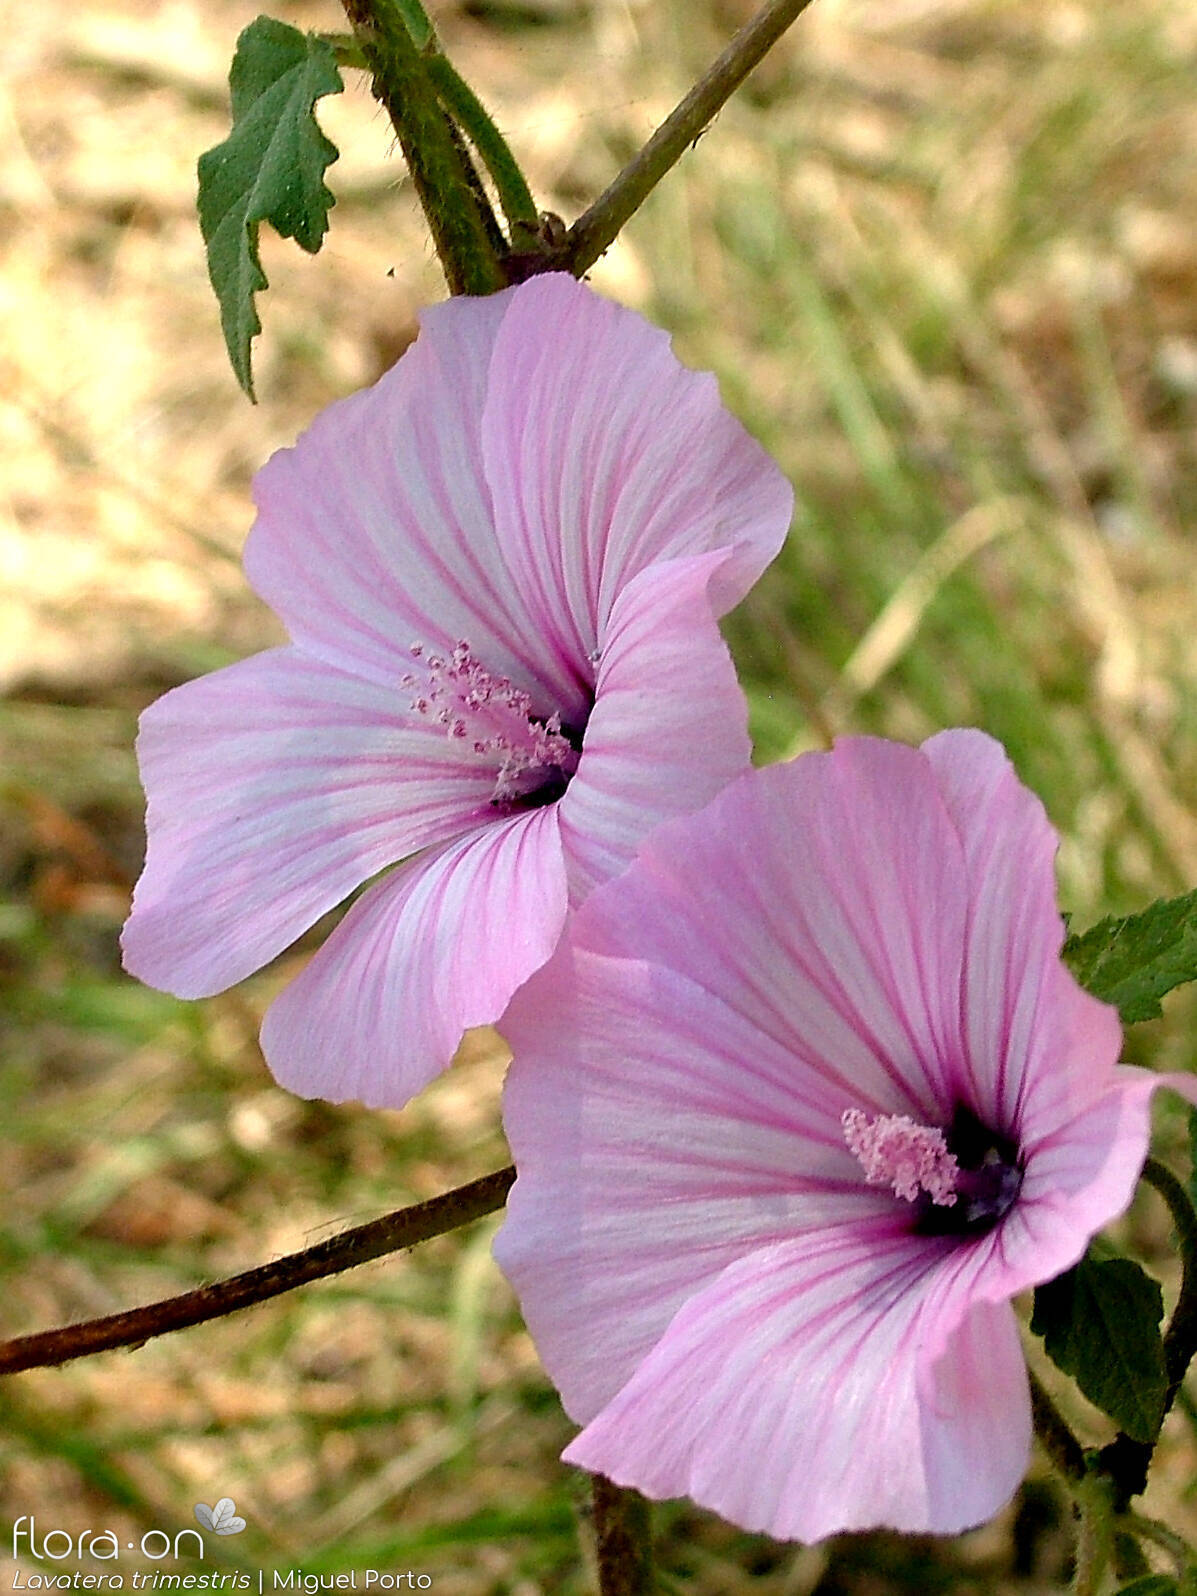 Lavatera trimestris - Flor (close-up) | Miguel Porto; CC BY-NC 4.0